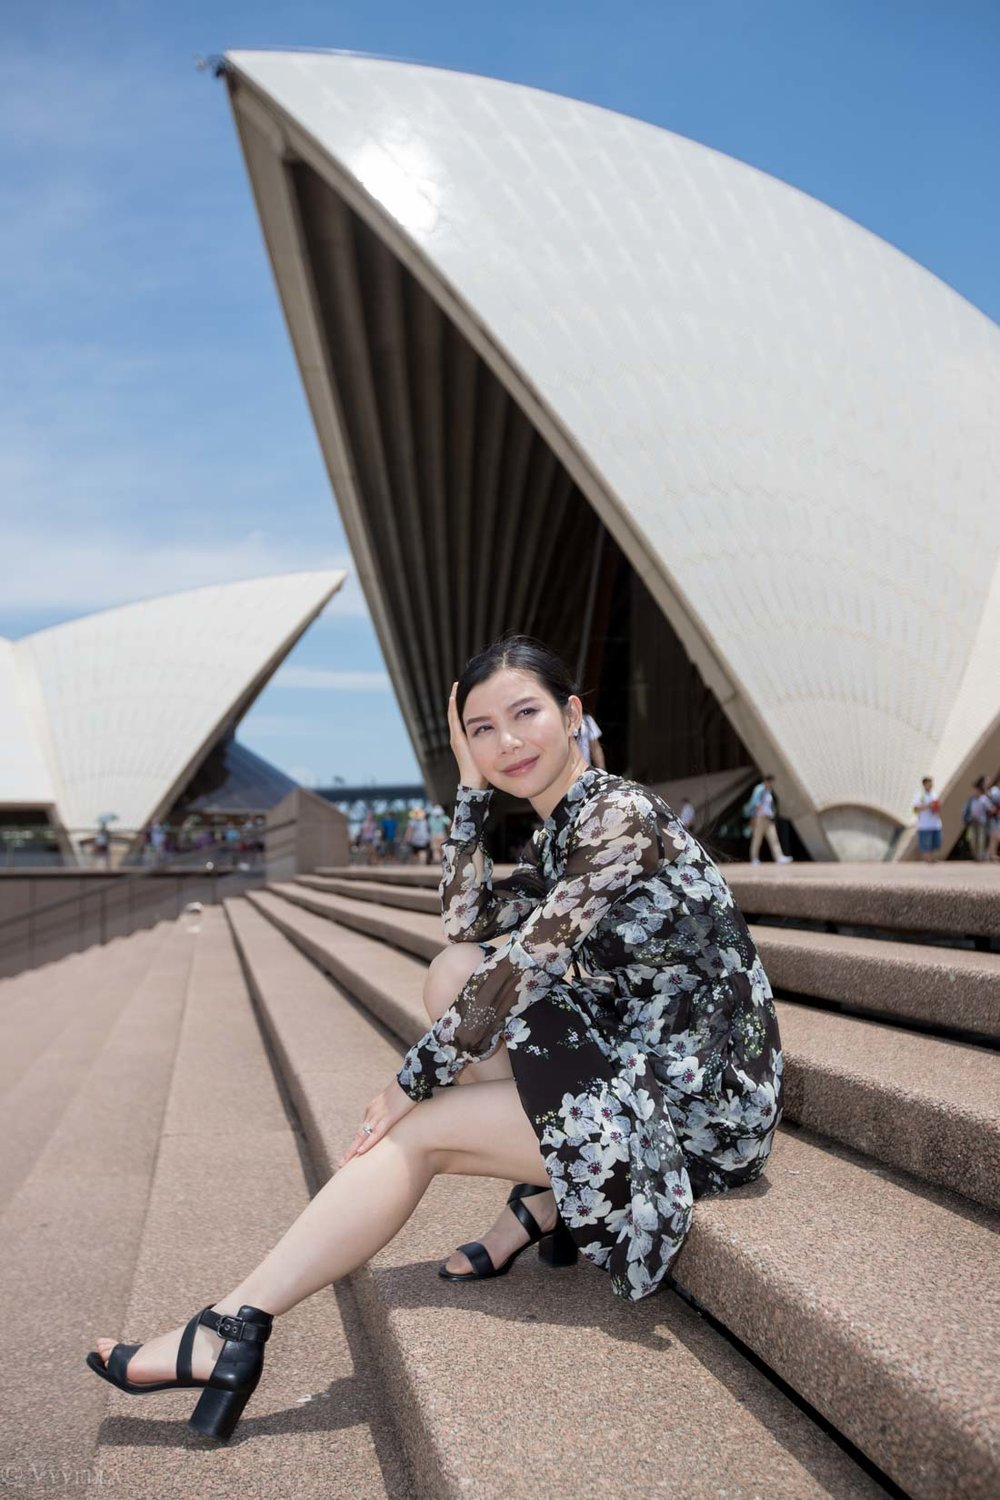 travel_sydney-opera-house_01.jpg